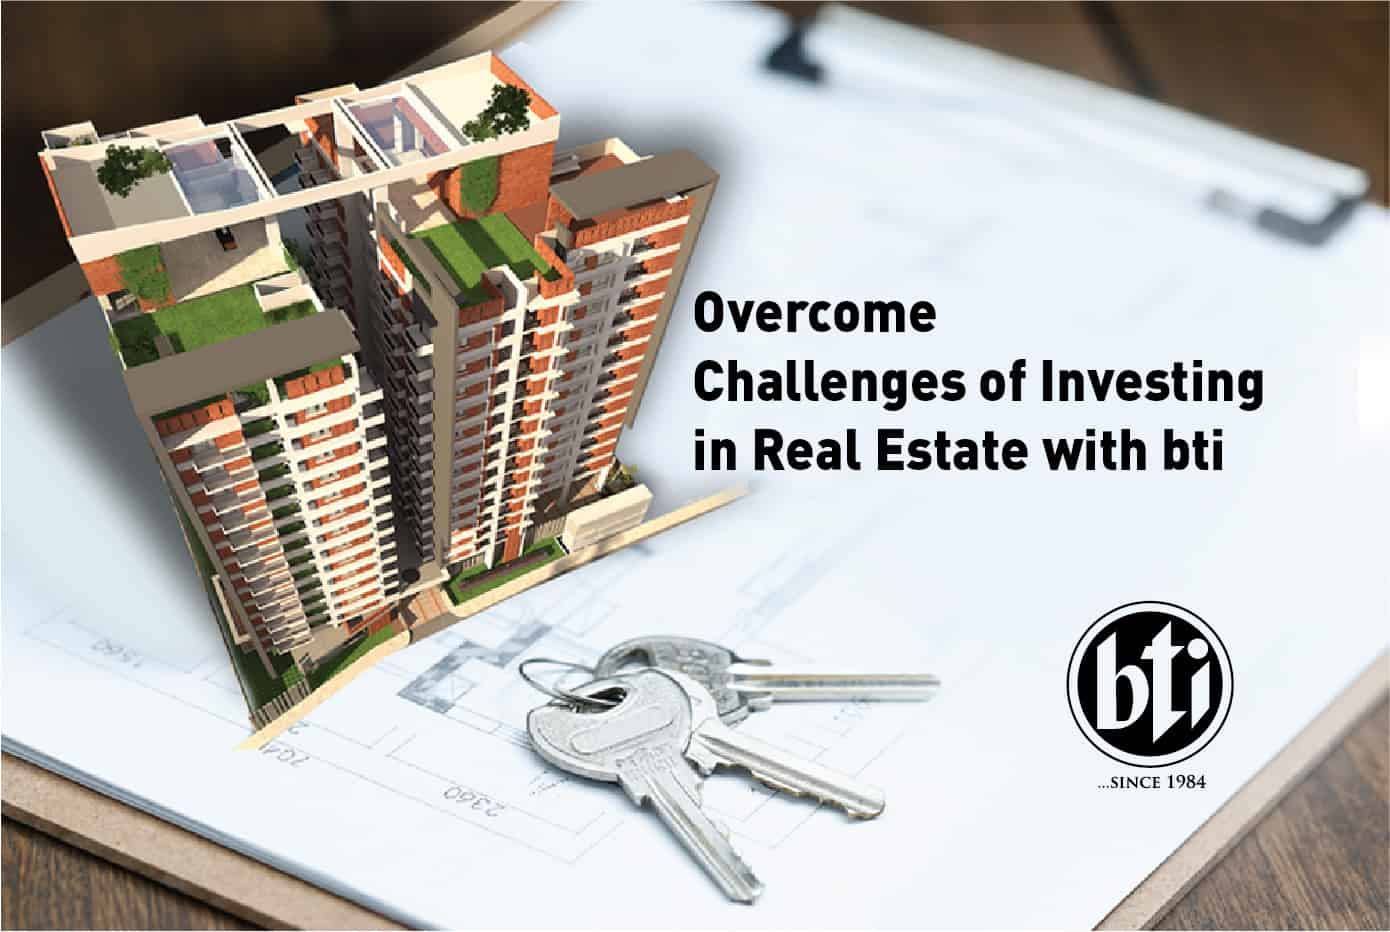 Investing in Real Estate With bti